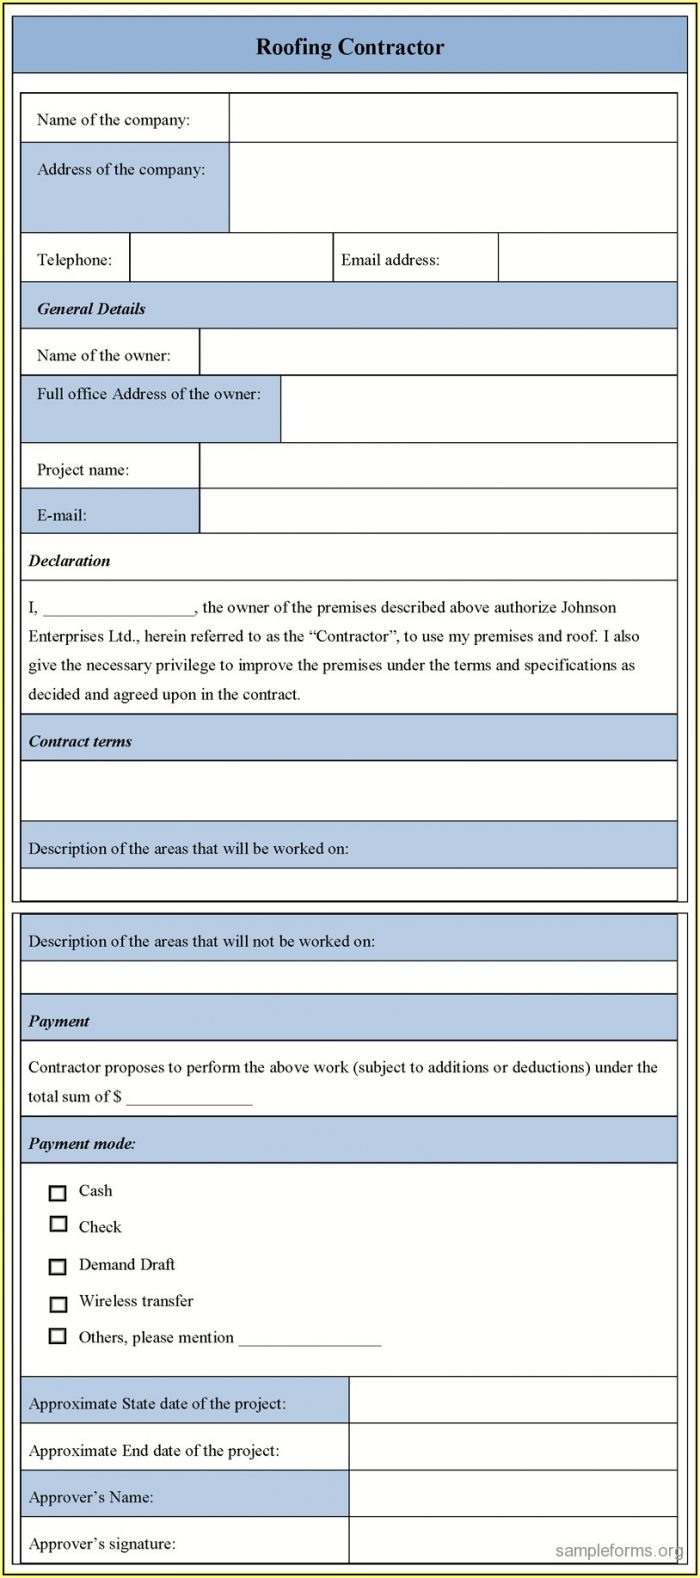 Roofing Contractor Forms